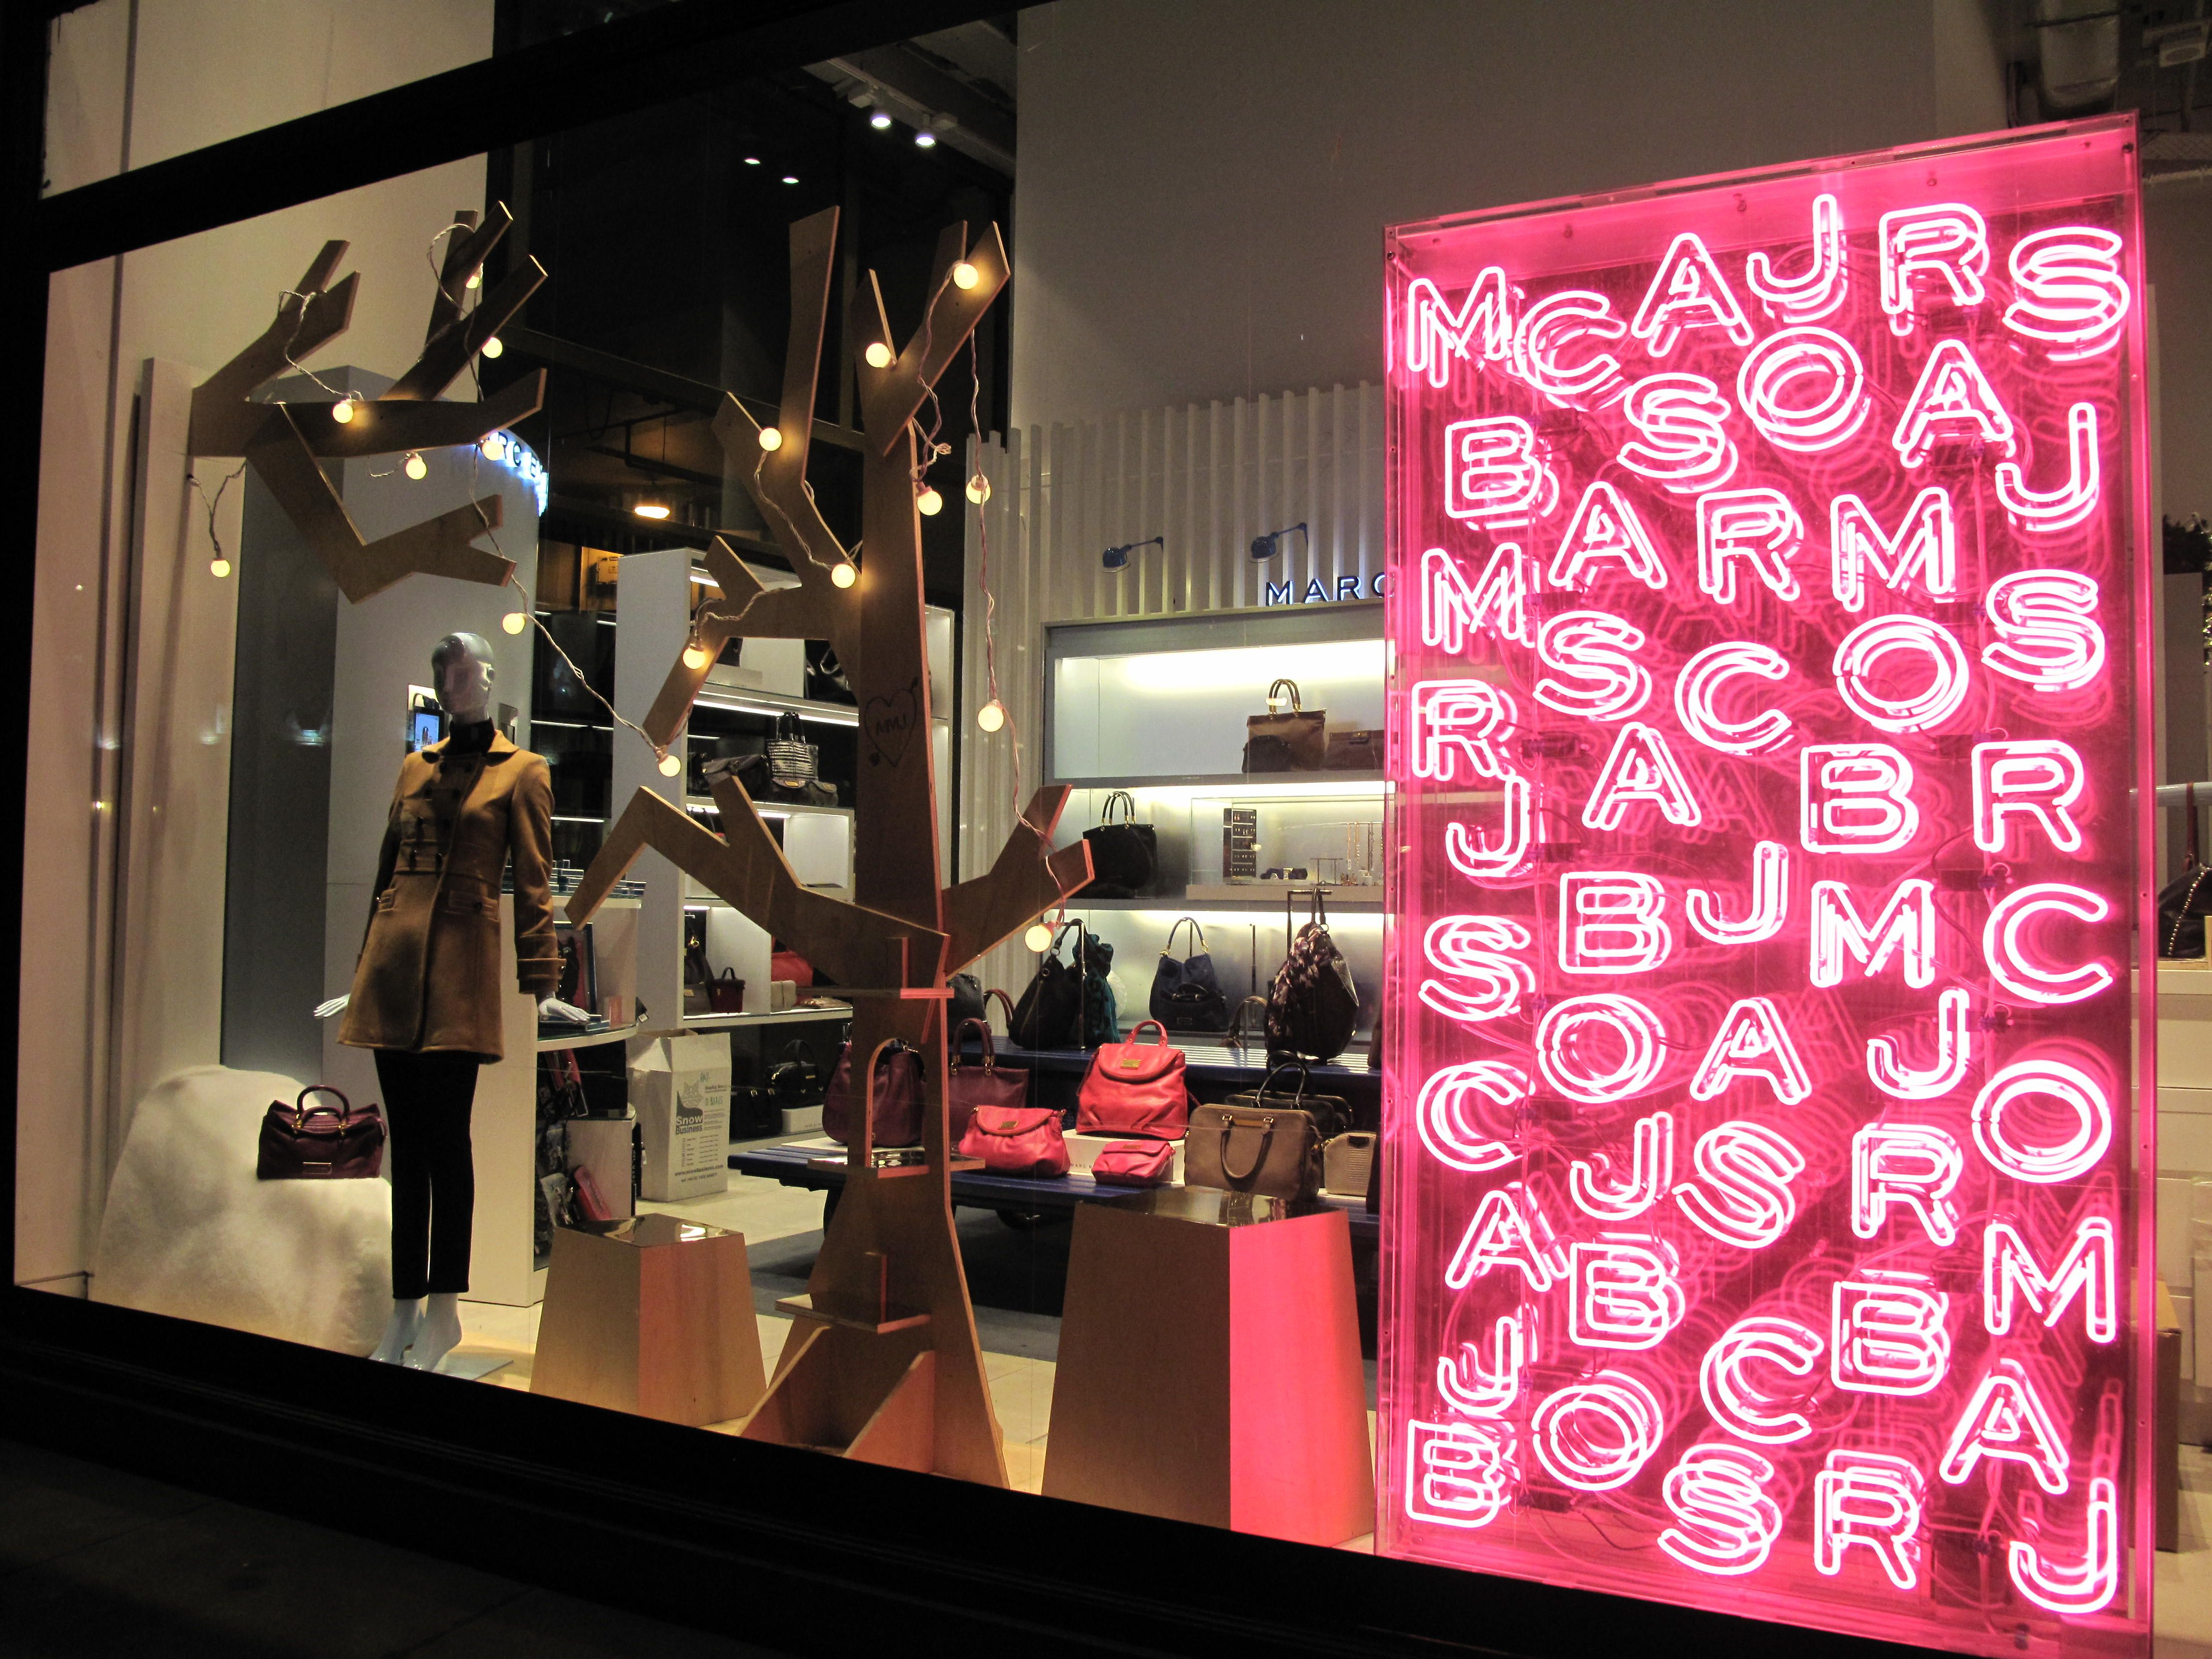 Neon Lights Illuminate this Christmas Window Display by